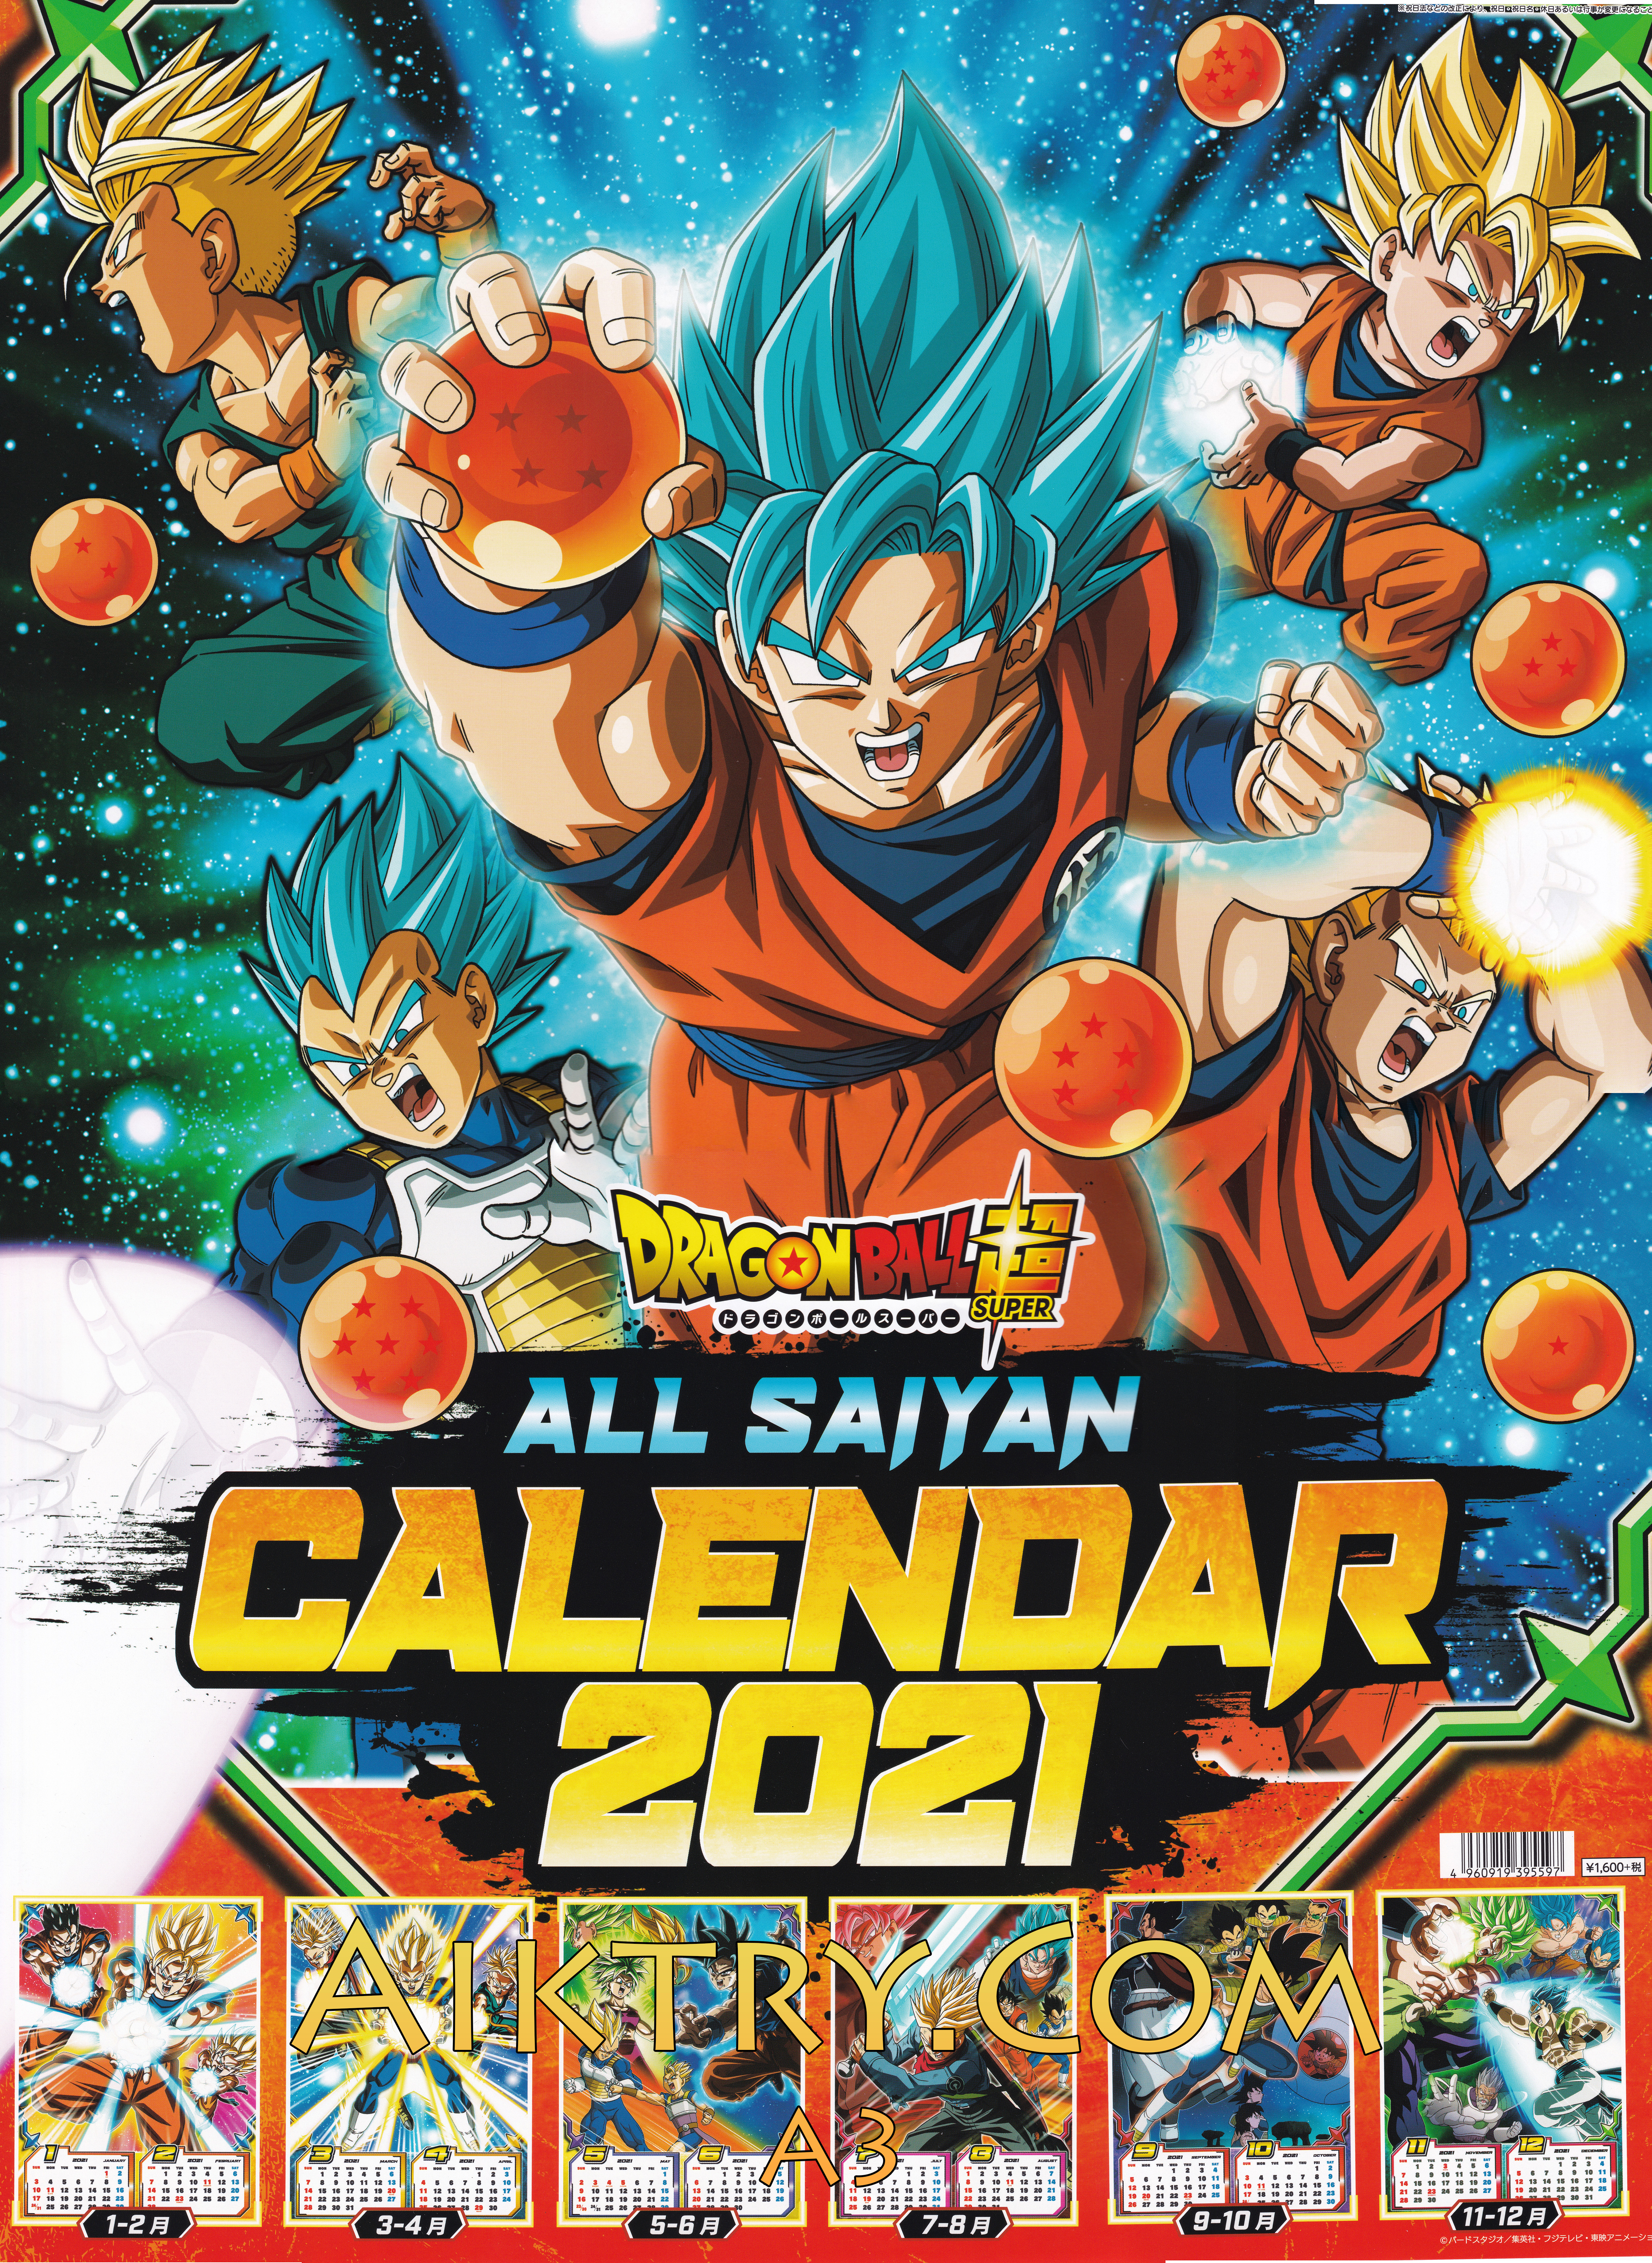 00 Dragon Ball Super 2021 Calendar Cover All Saiyan